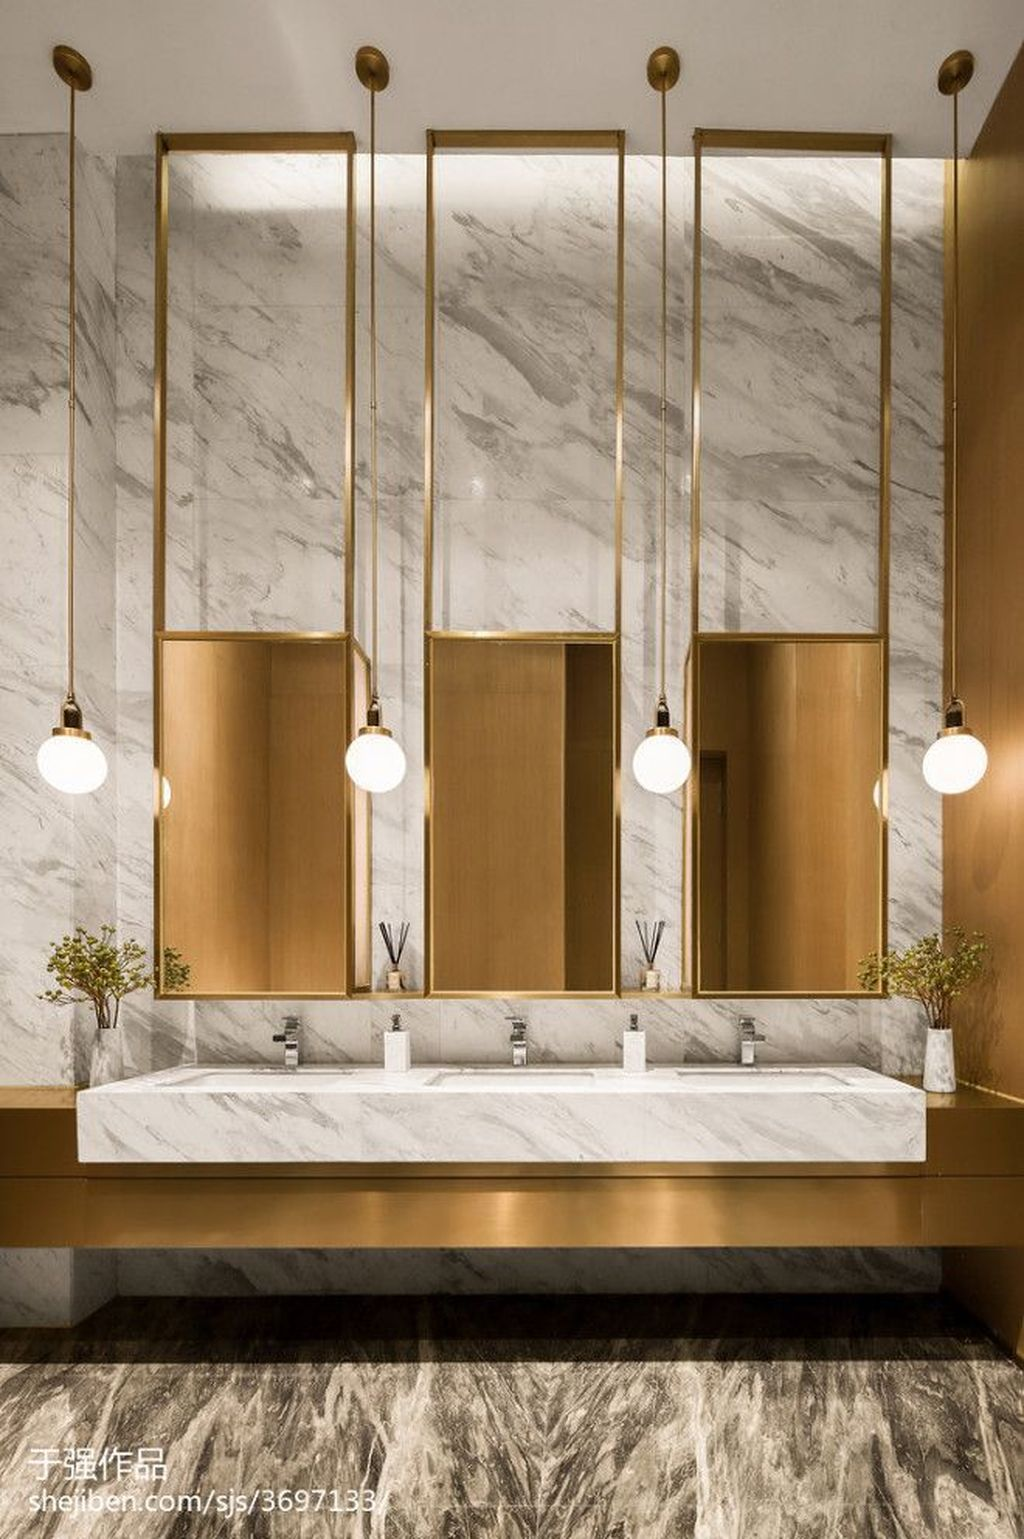 Luxury Bathroom Design And Decor Ideas 31